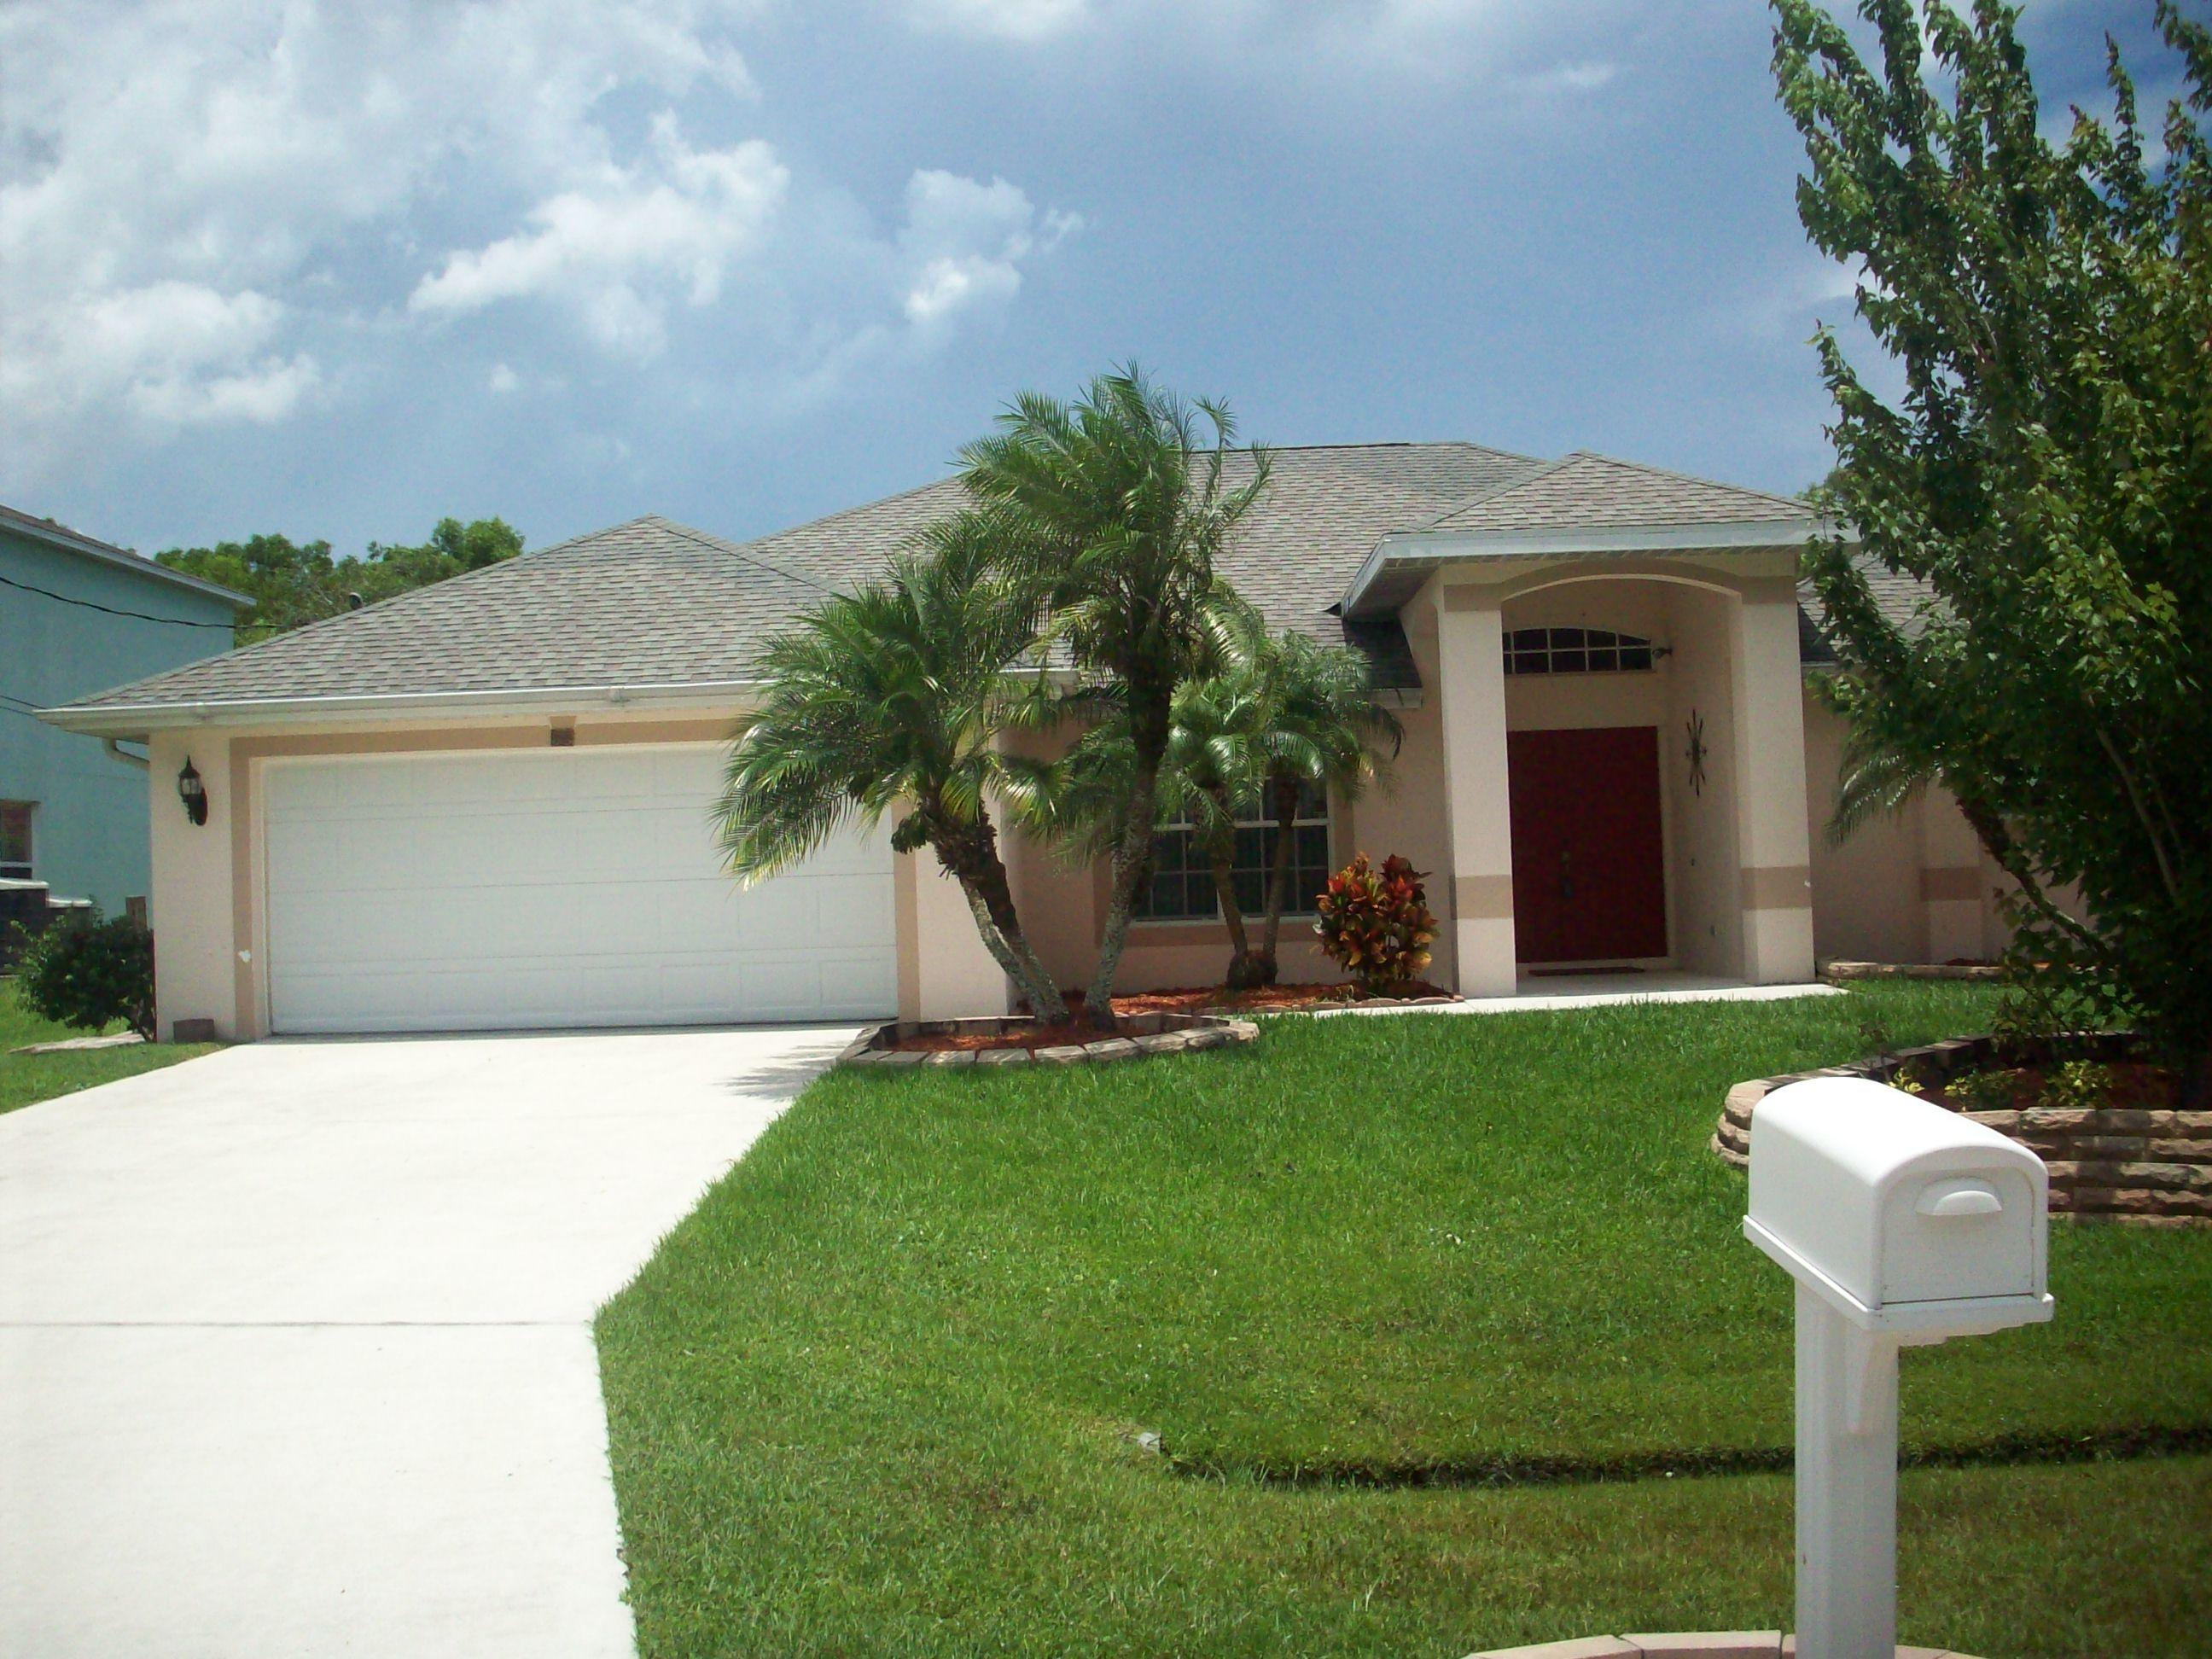 6725 Monoco Port Saint Lucie 34983